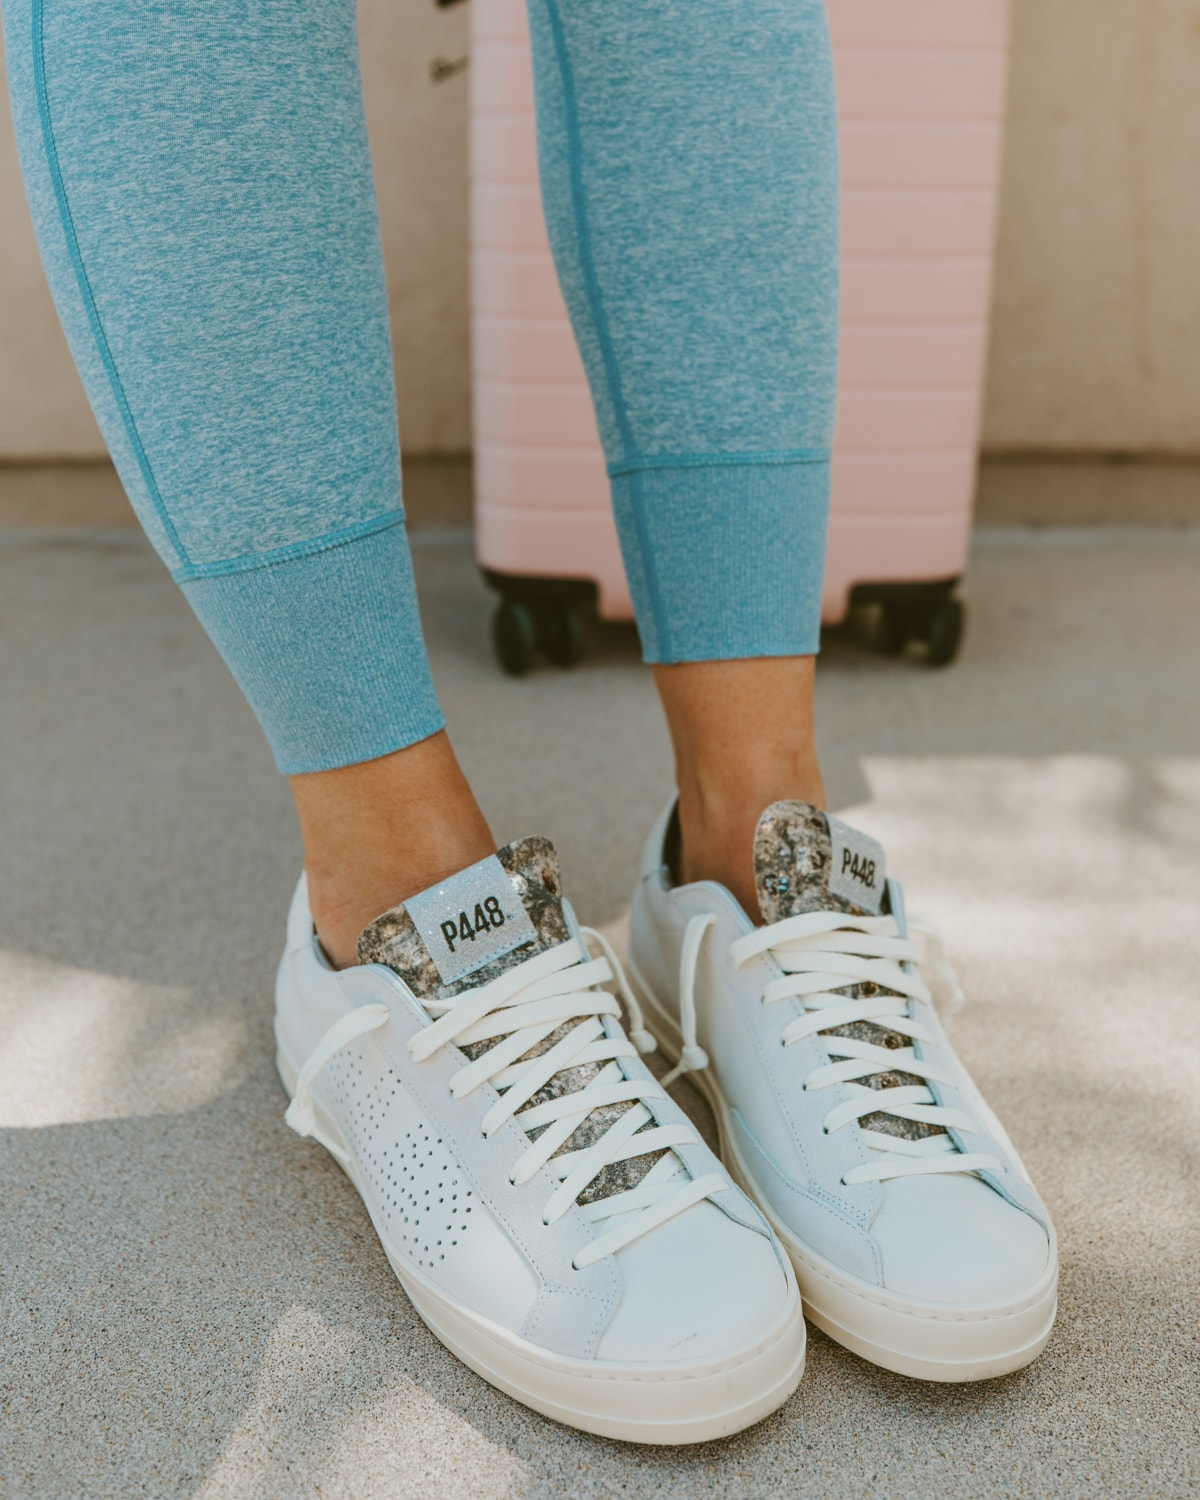 Low Top Sneakers for travel